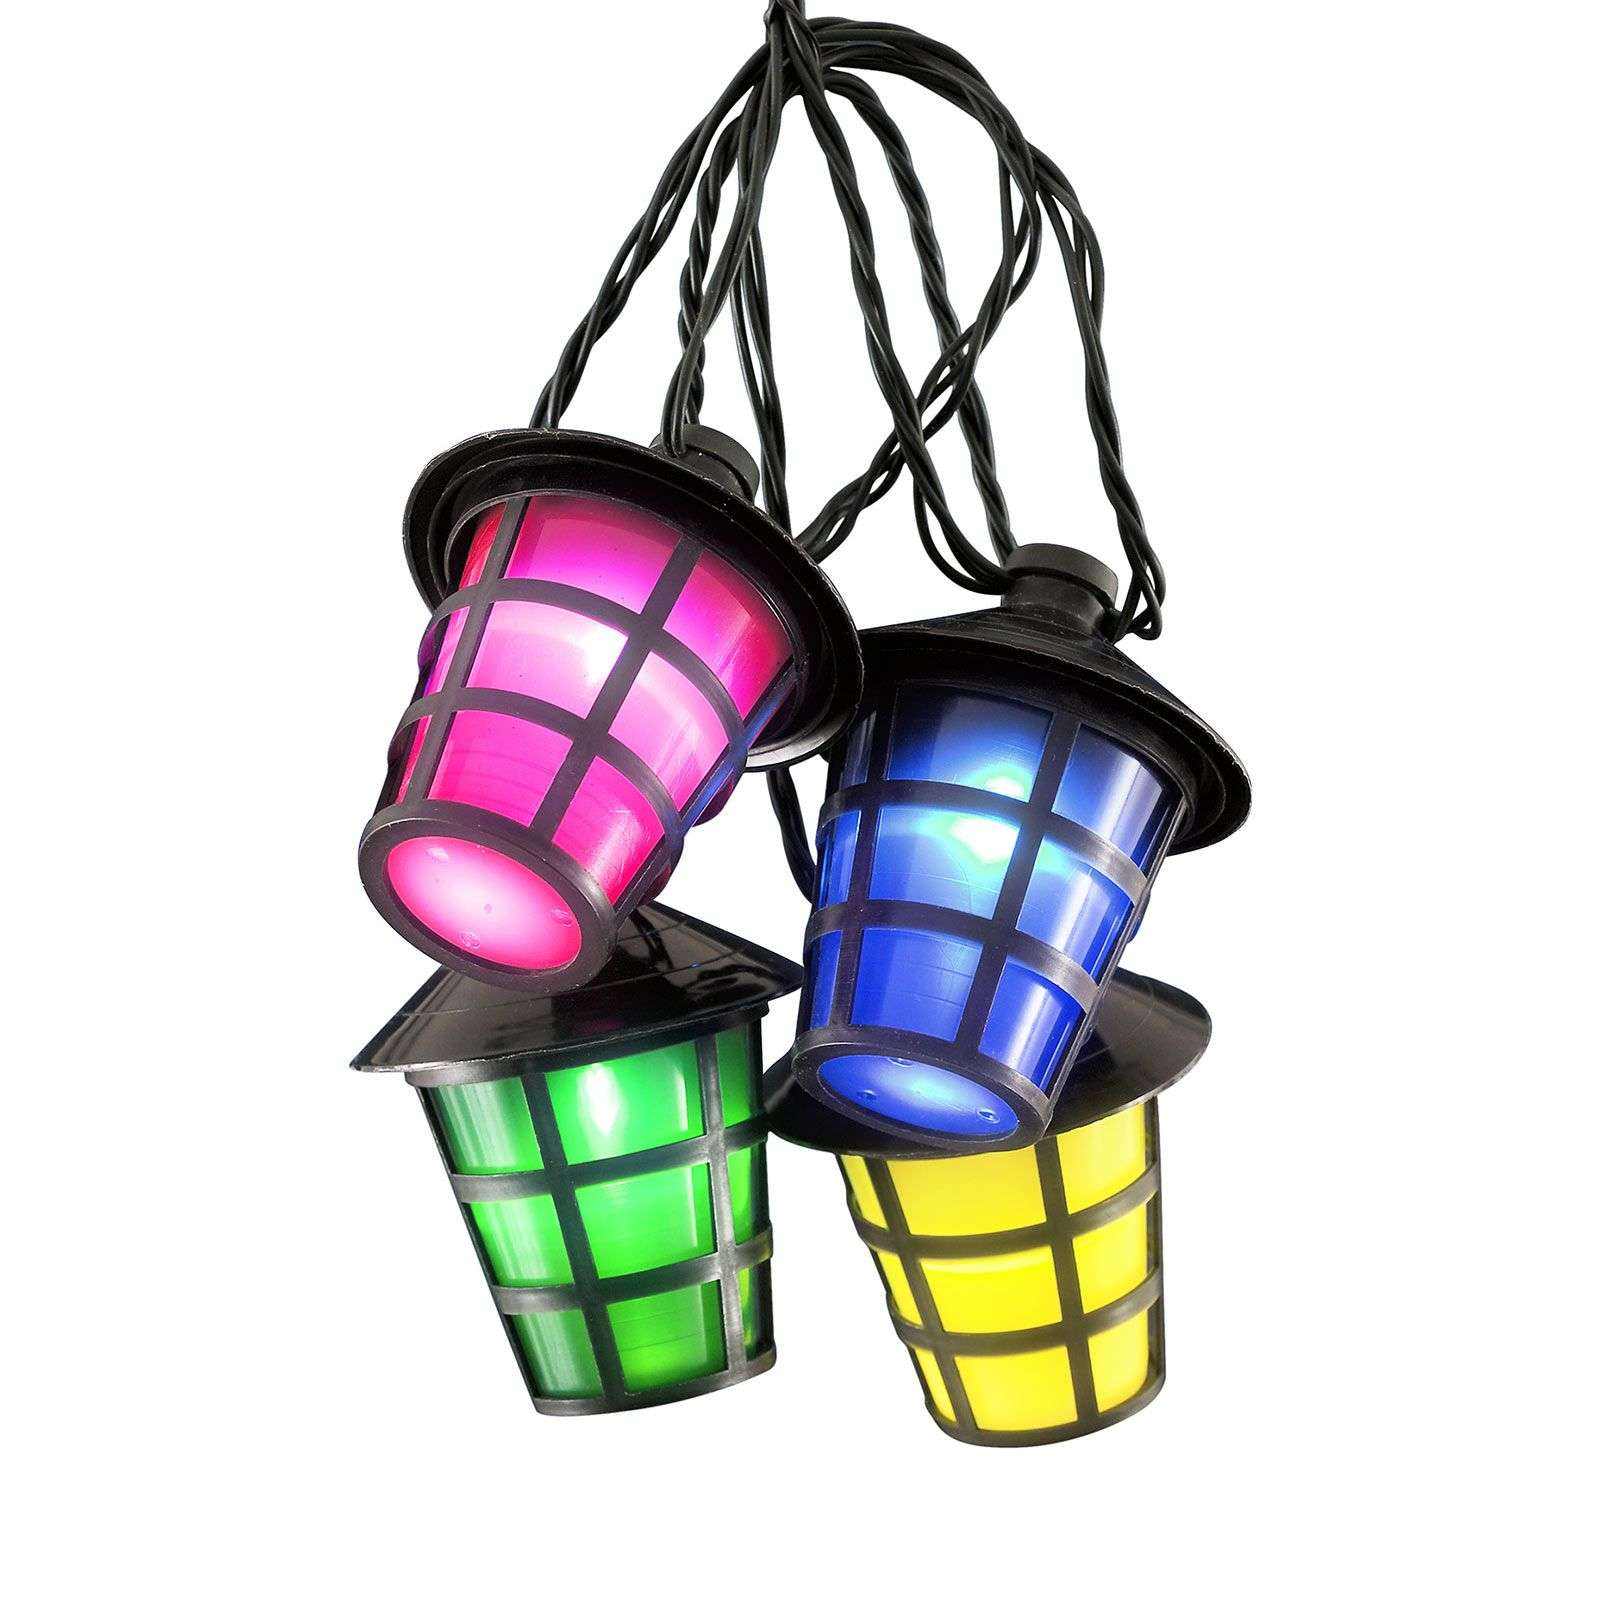 Catena luminosa Lampion, 20 lanterne LED colorate